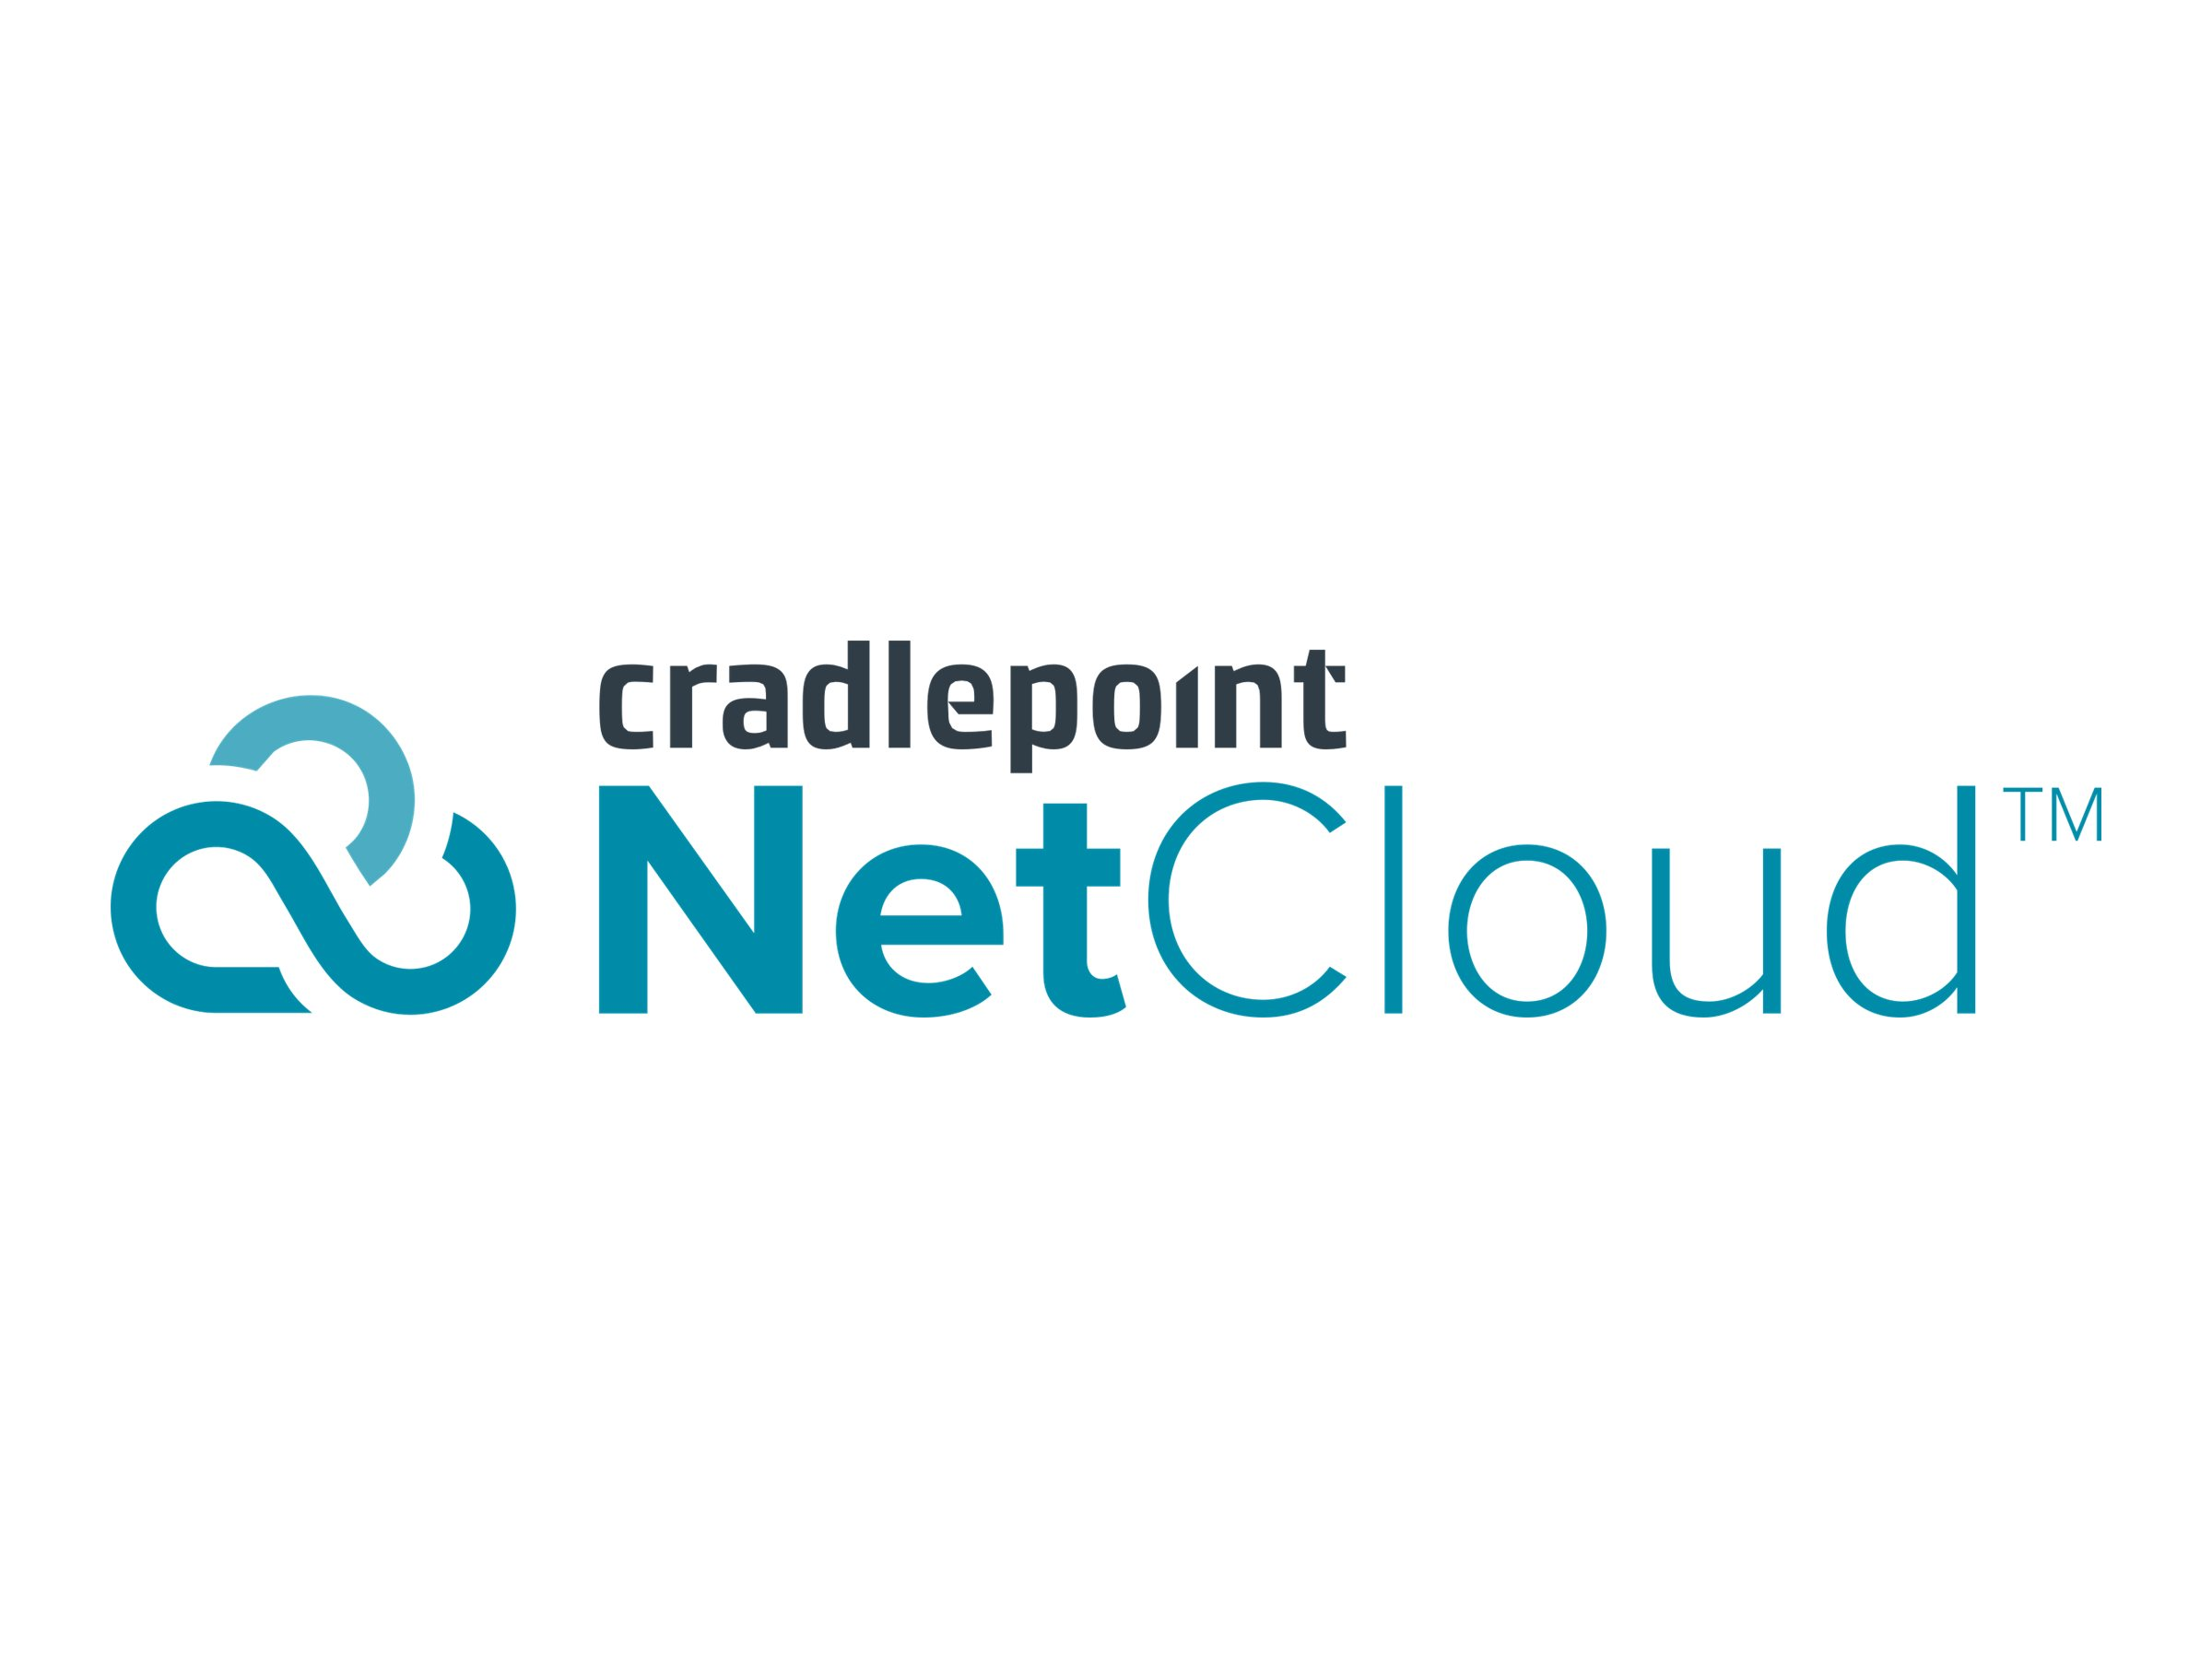 Cradlepoint NetCloud Advanced for Branch Routers (Enterprise) - subscription license renewal (1 year) - 1 license